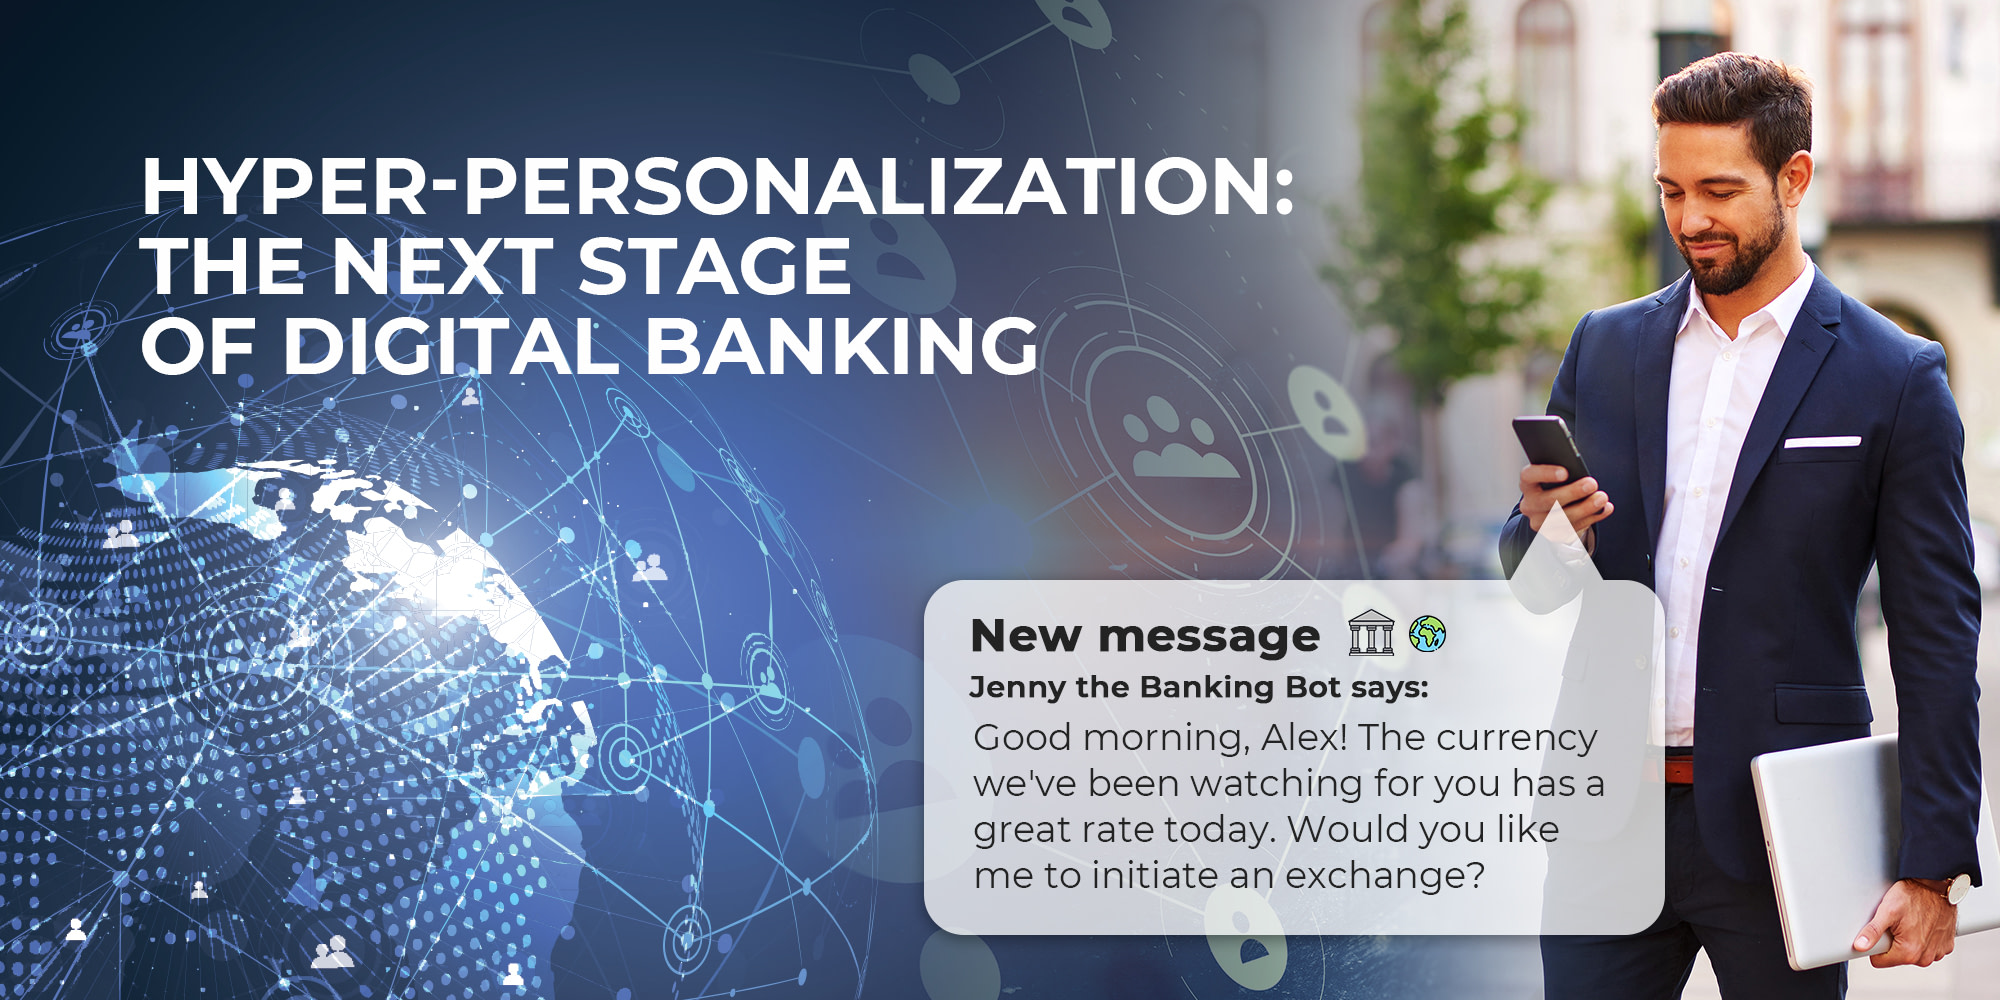 Hyper-Personalization: the Next Stage of Digital Banking